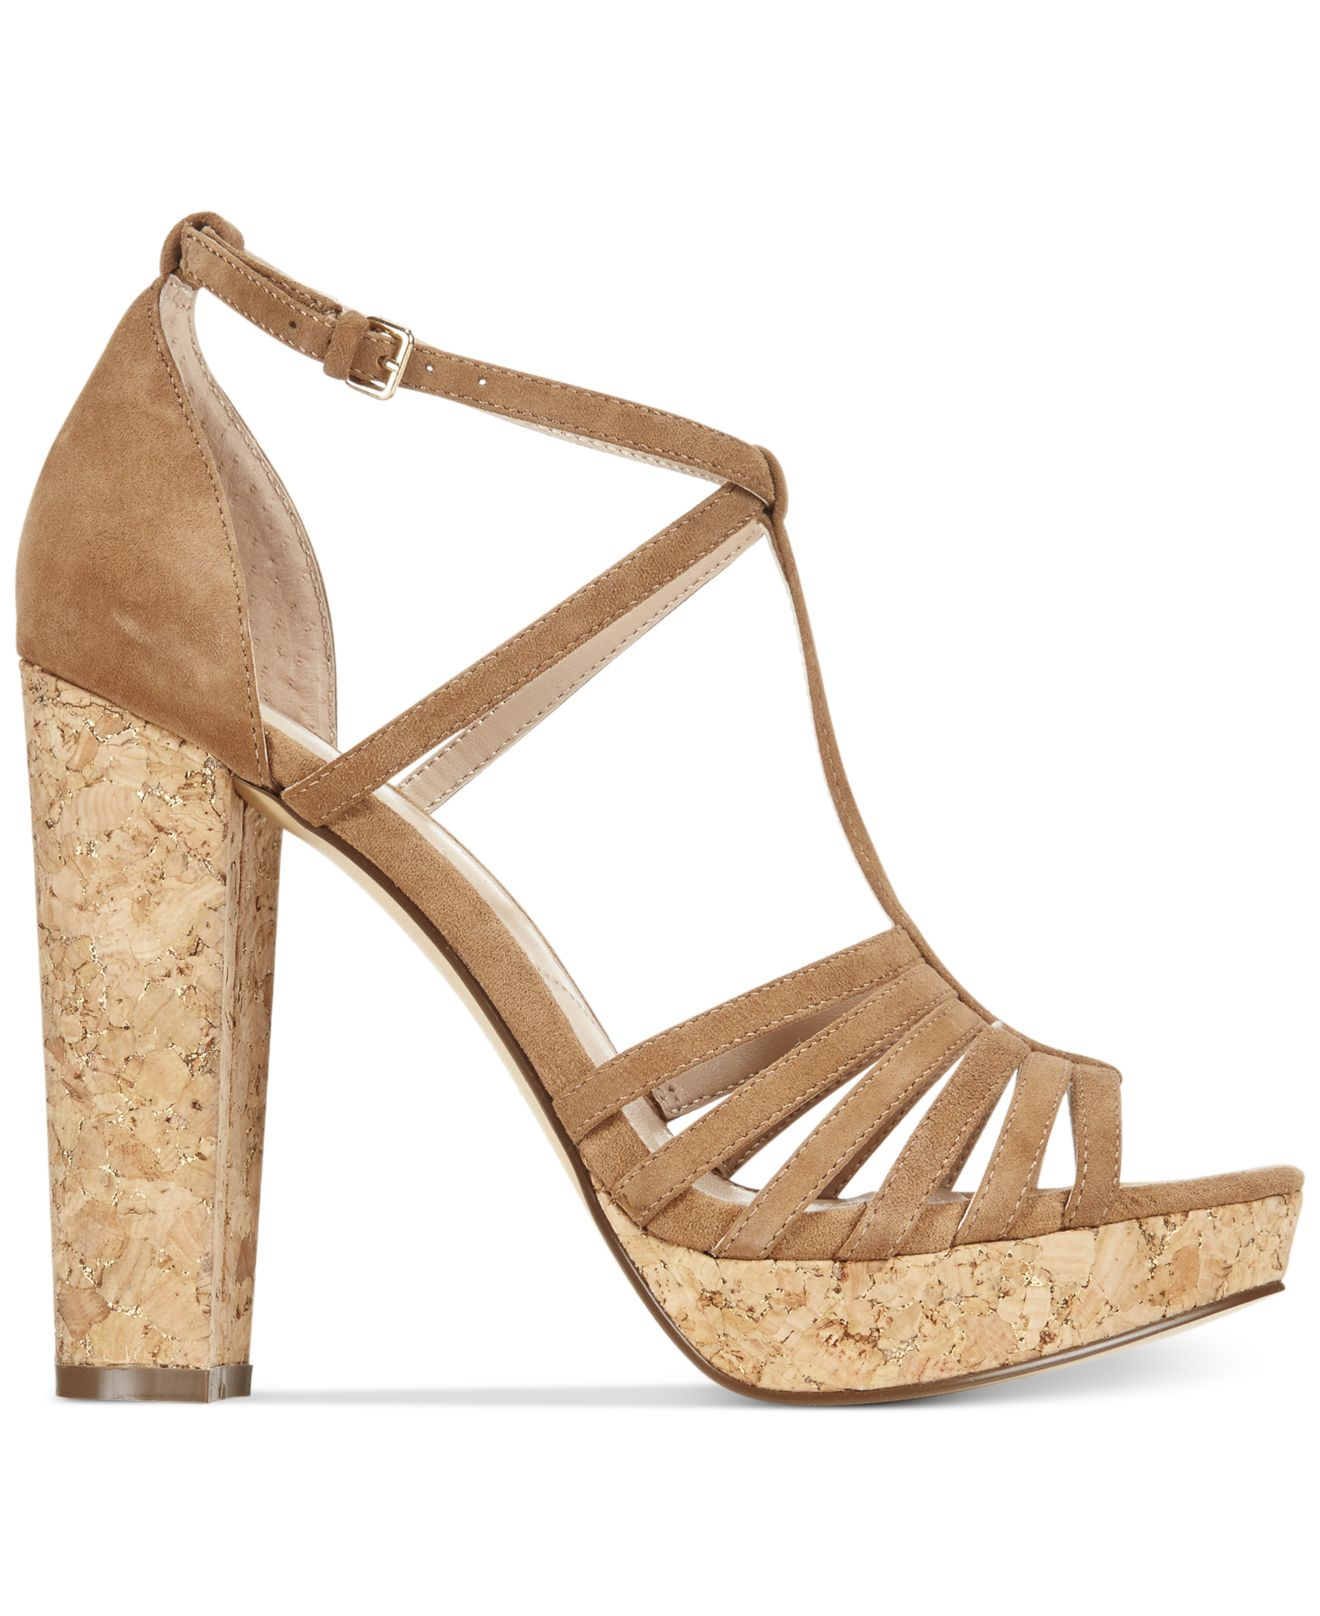 d592edb7f398 Lyst - Charles David Faint Strappy Suede Sandals in Natural